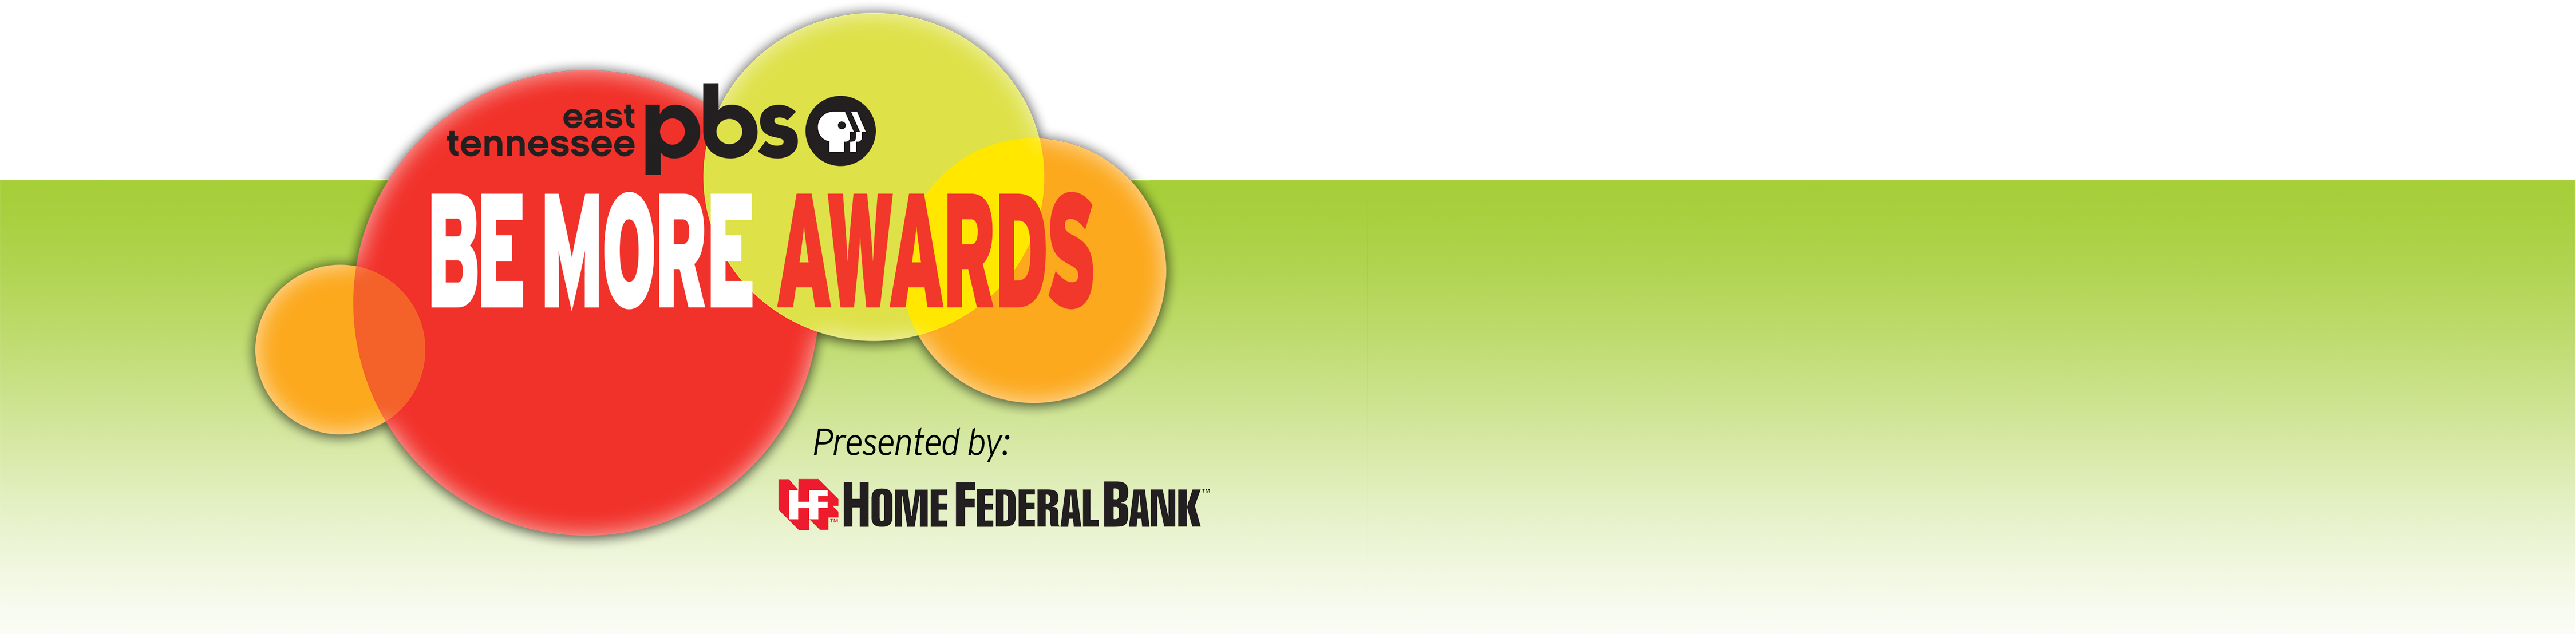 Home Federal Bank is the proud sponsor of East Tennessee PBS' Be More Awards